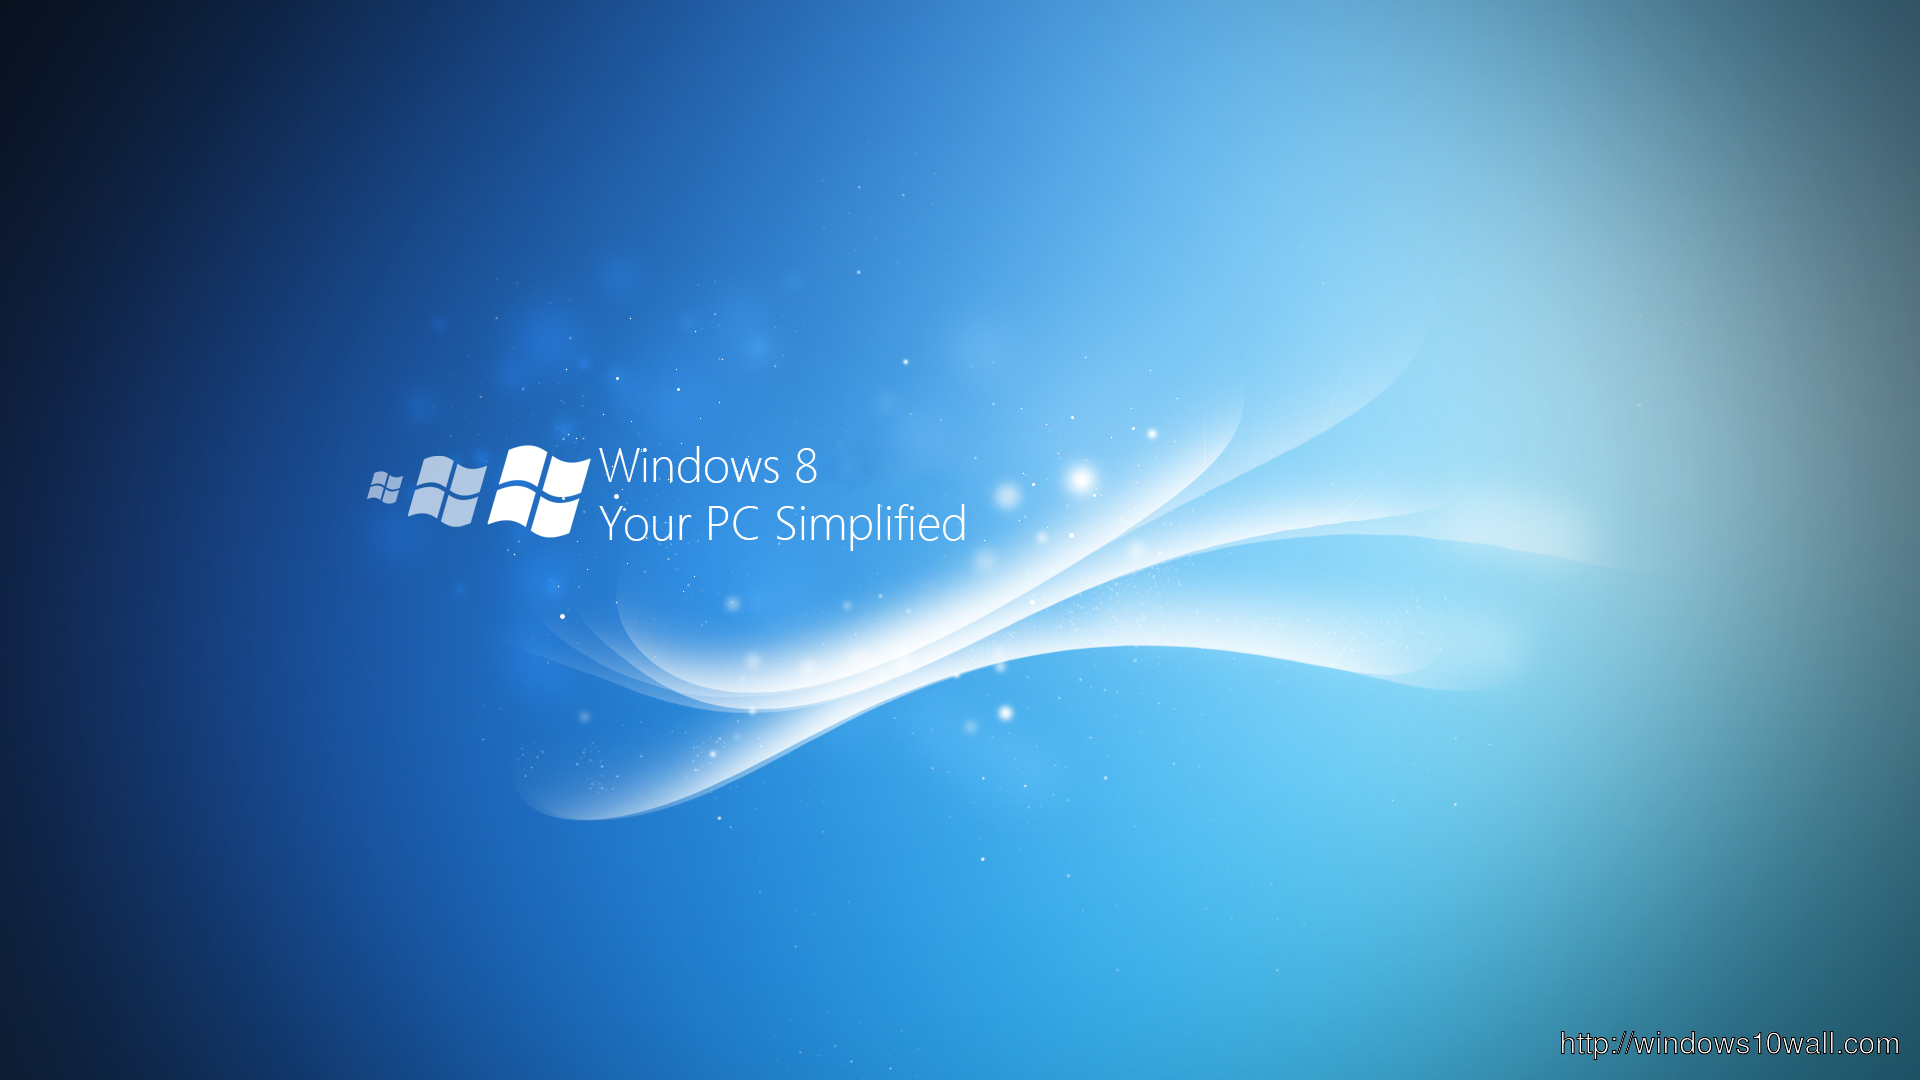 Windows 8 wallpaper 7 Windows 8 Wallpapers